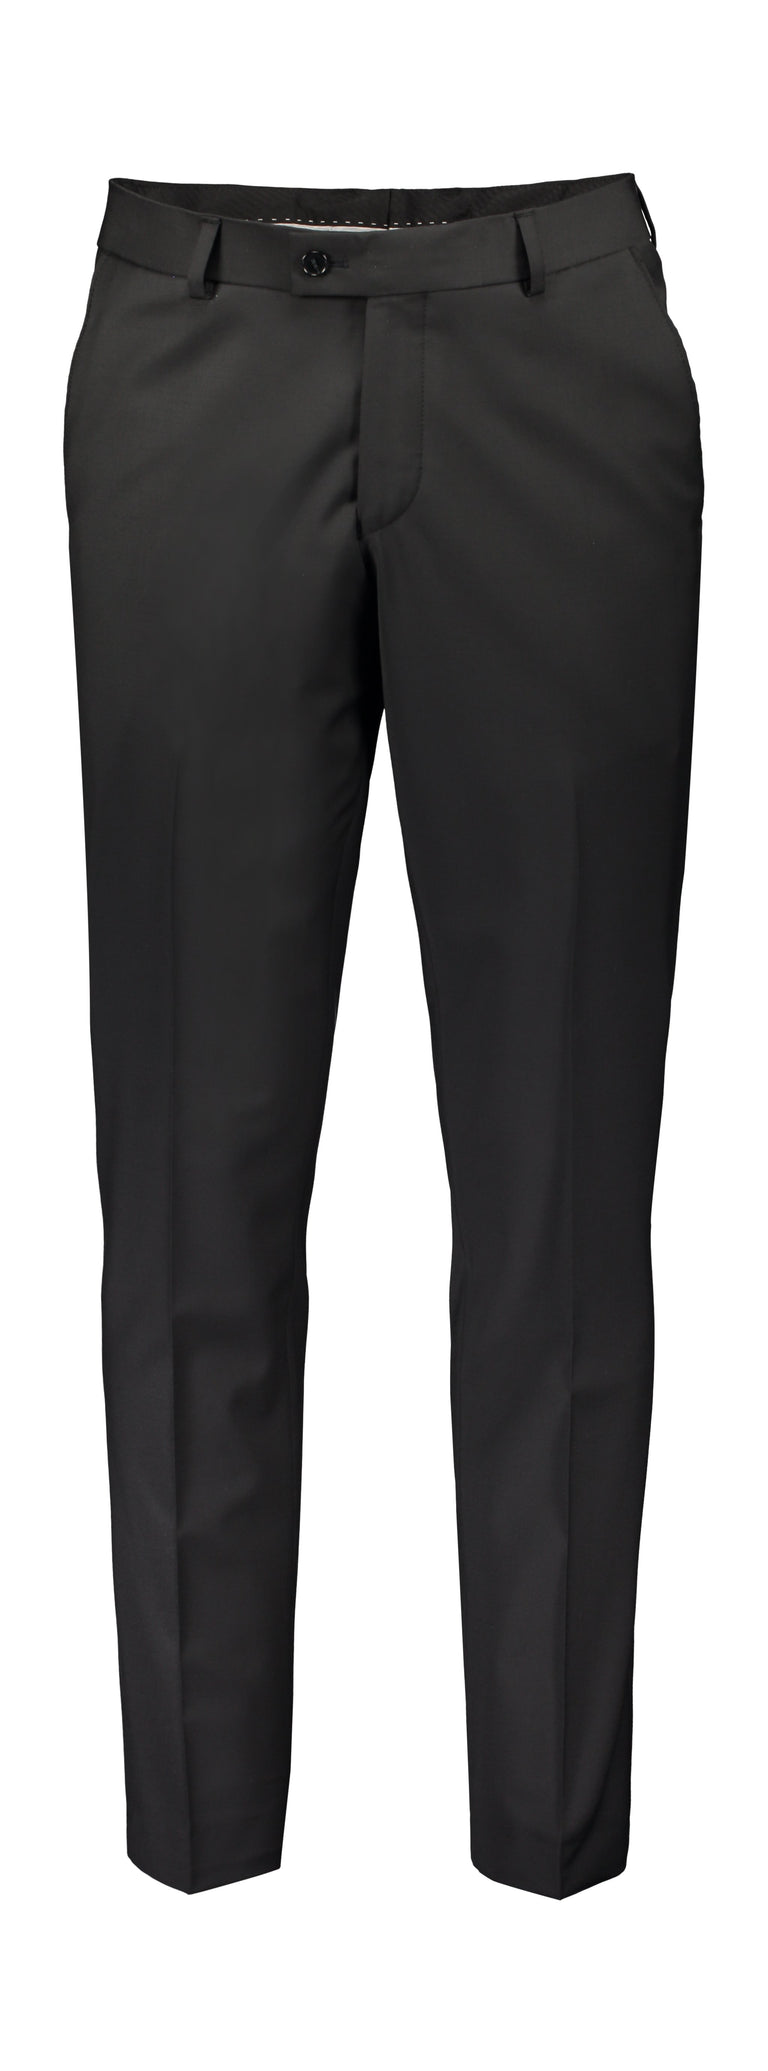 Athlete fit trousers black (2145260109886)